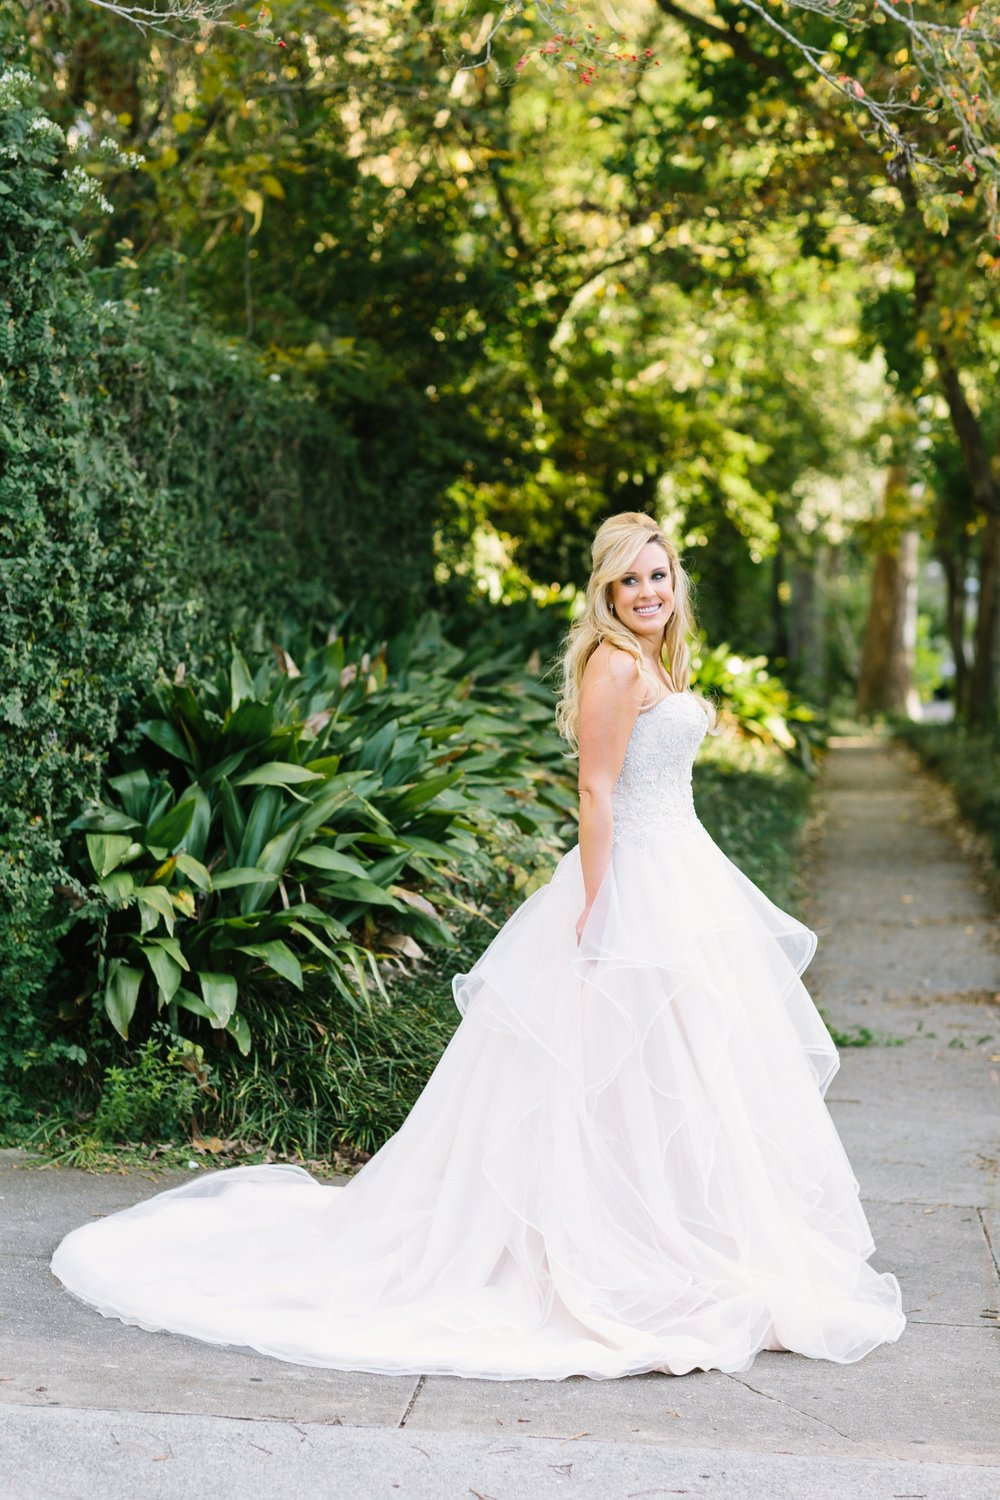 bakery-105-downtown-wilmington-north-carolina-bridal-session-samantha_0036.jpg